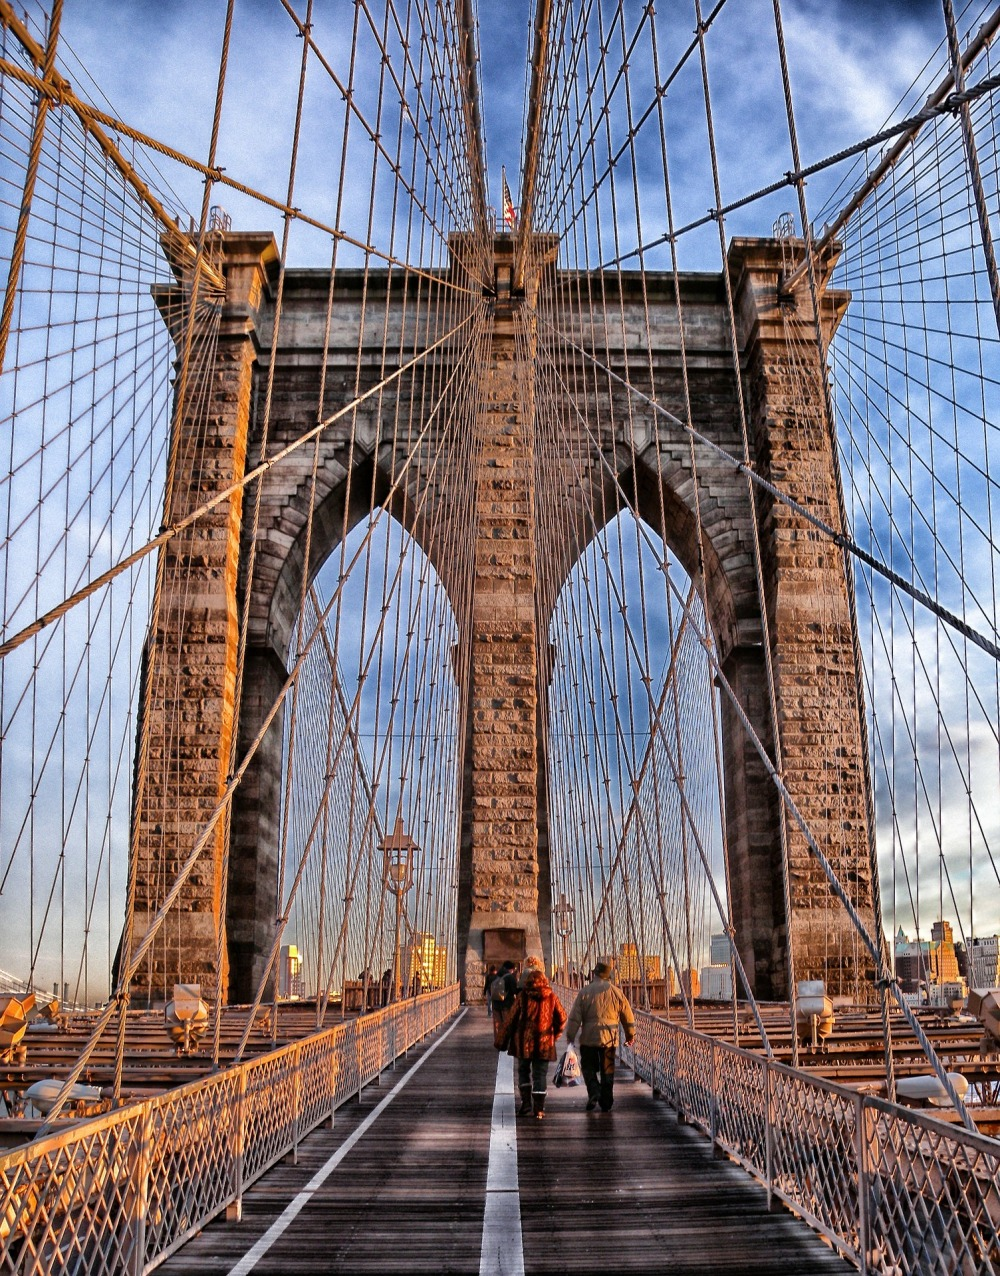 brooklyn-bridge-105079_1920.jpg